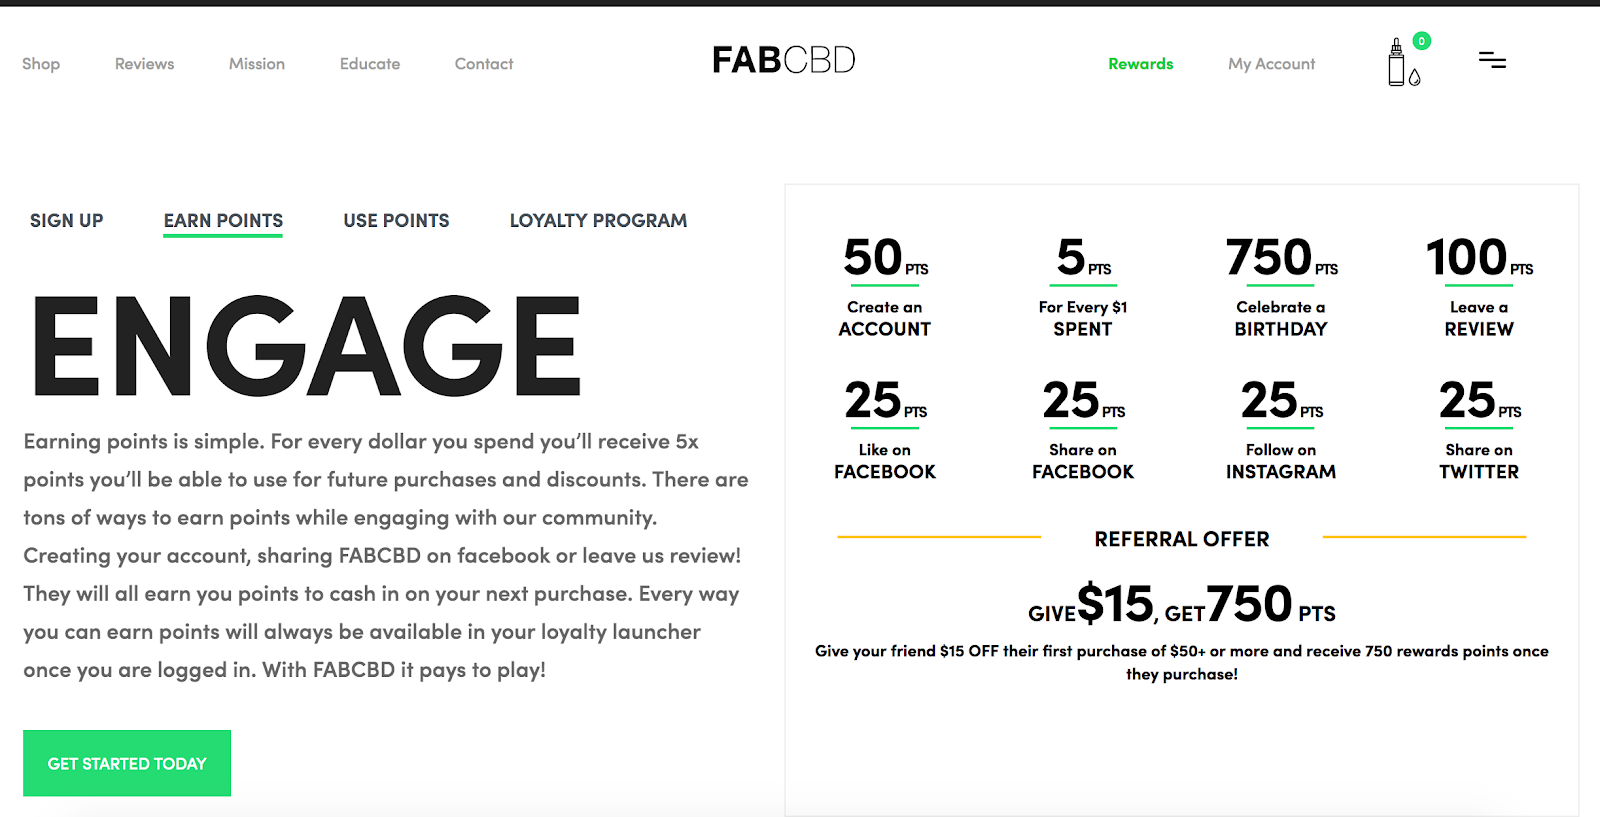 fabcbd customer rewards program